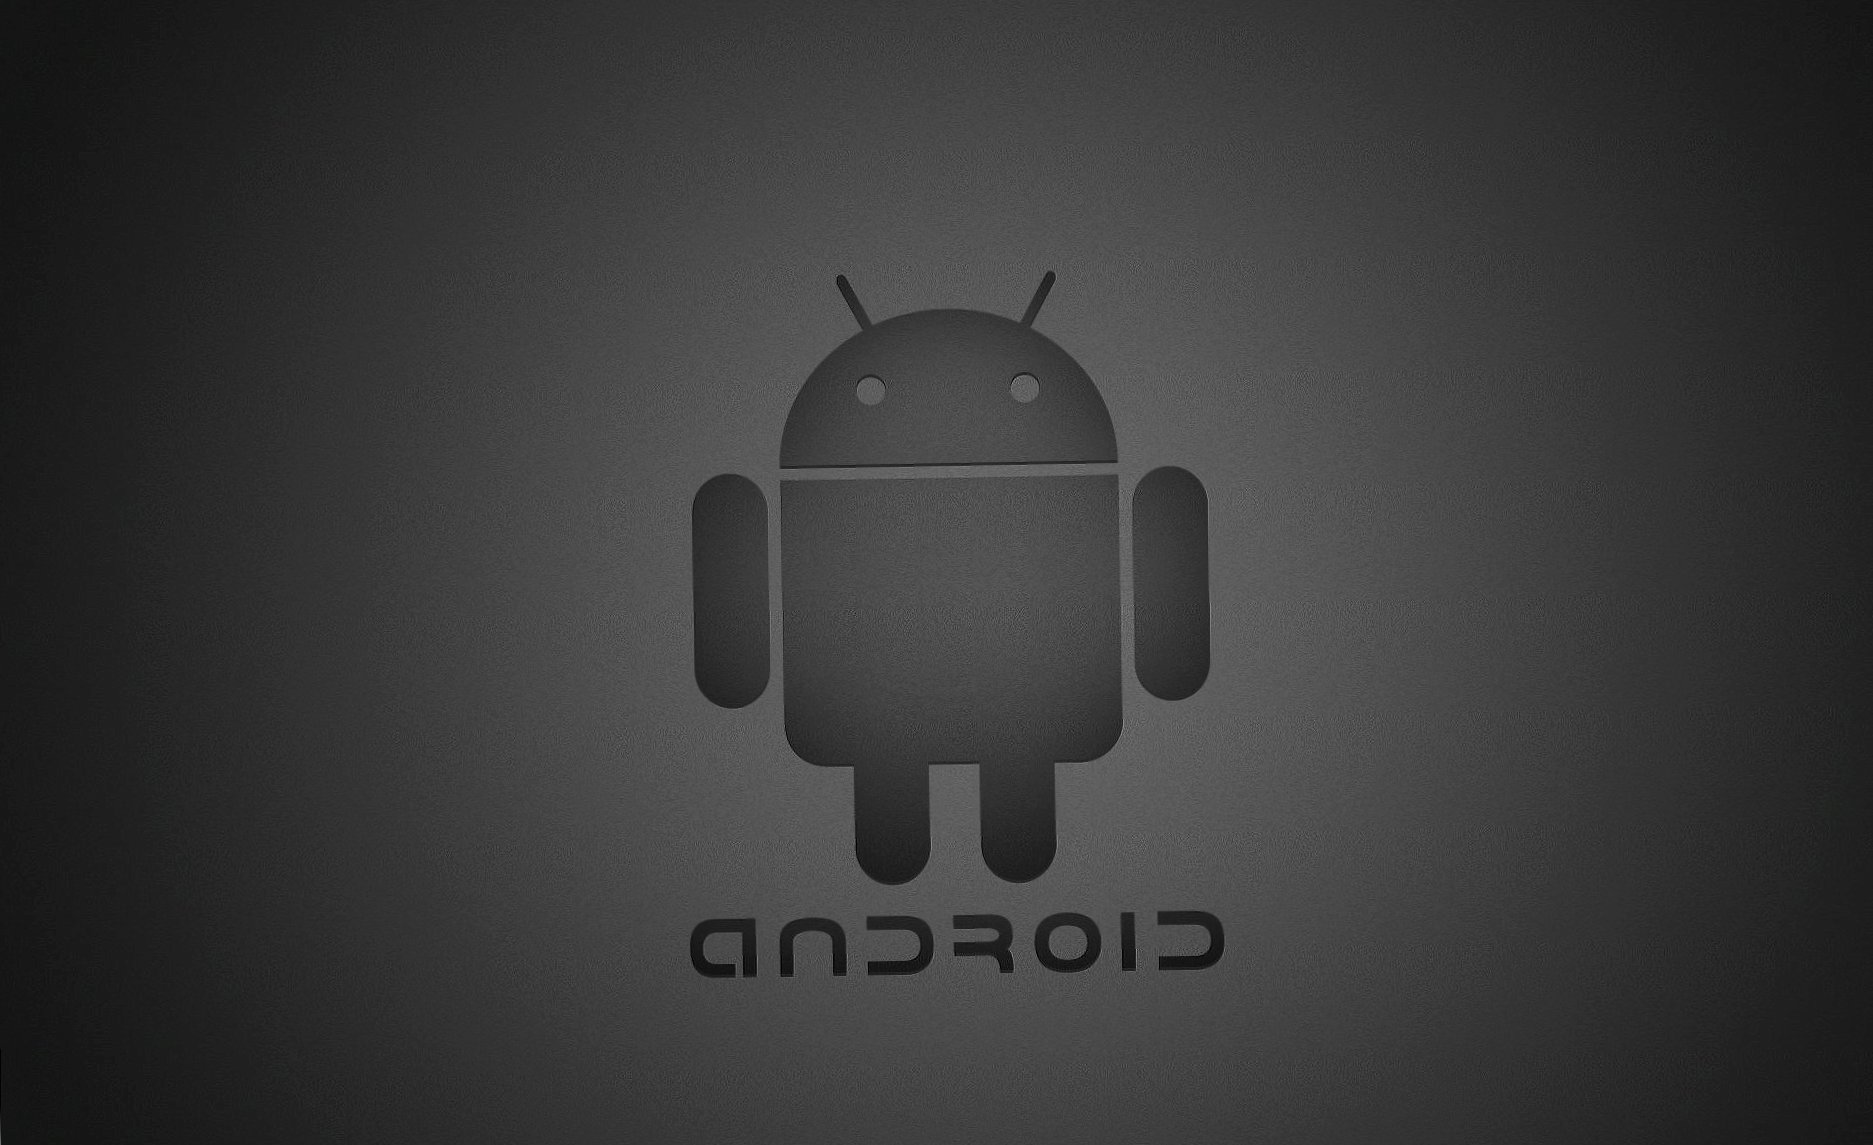 Gray graphite android wallpapers HD quality